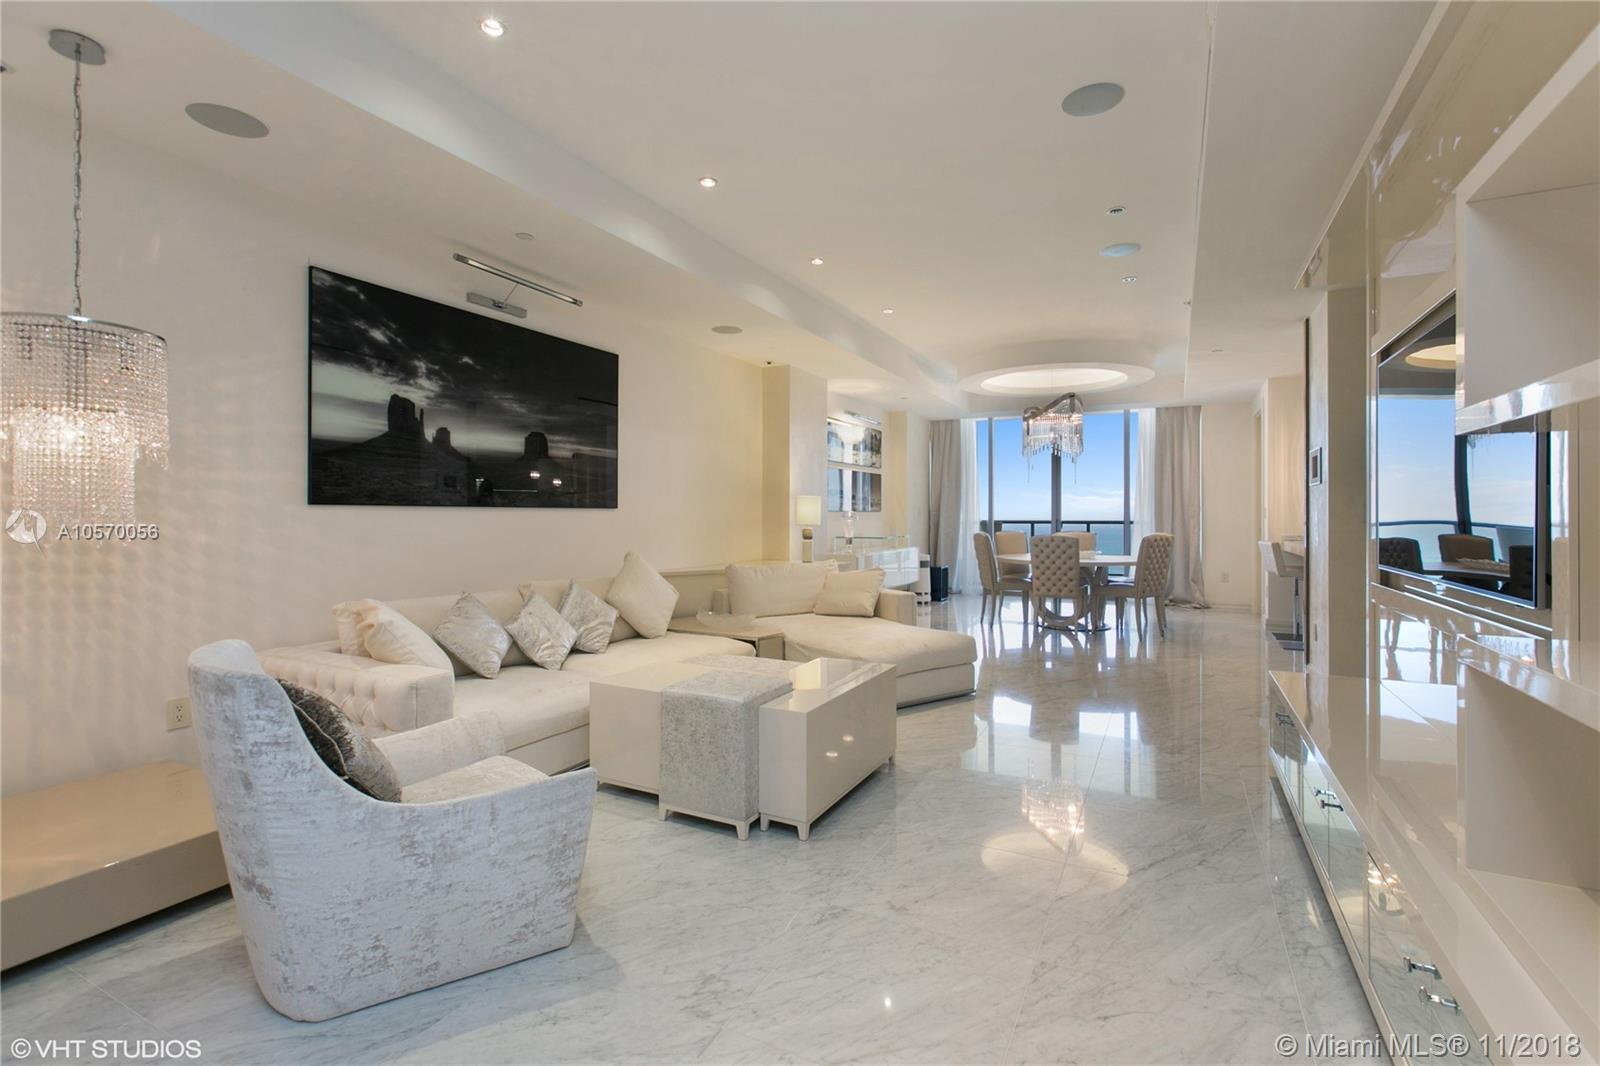 9703 Collins Ave, Unit #PH-07 Luxury Real Estate